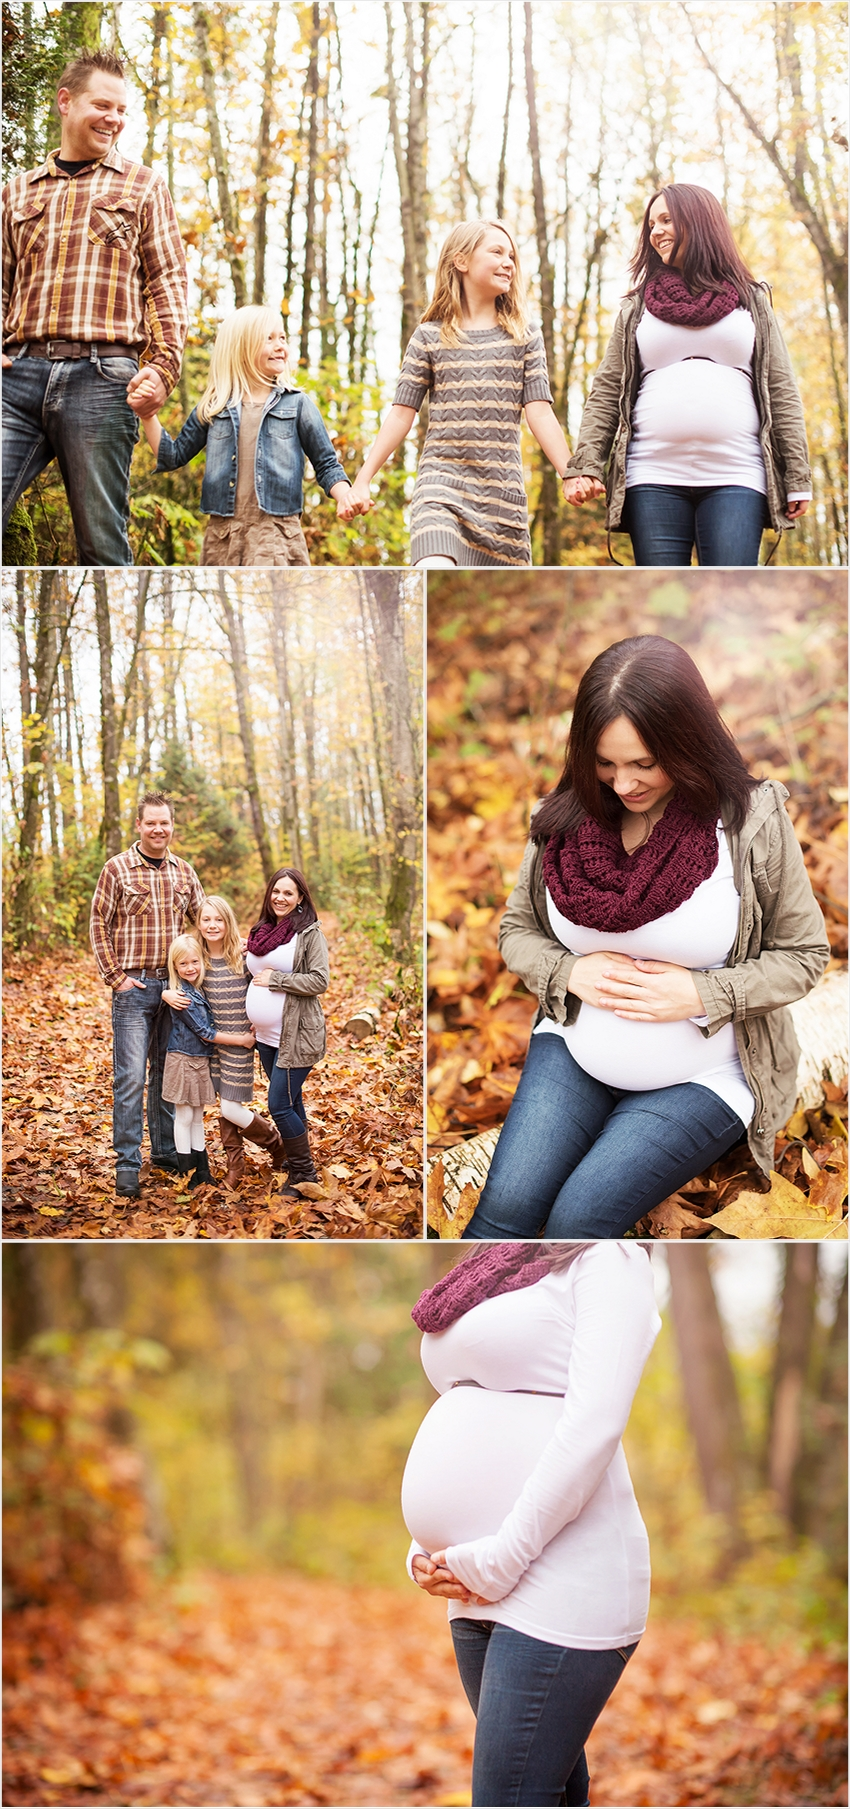 abbotsford-family-maternity-photographer-008-side-8